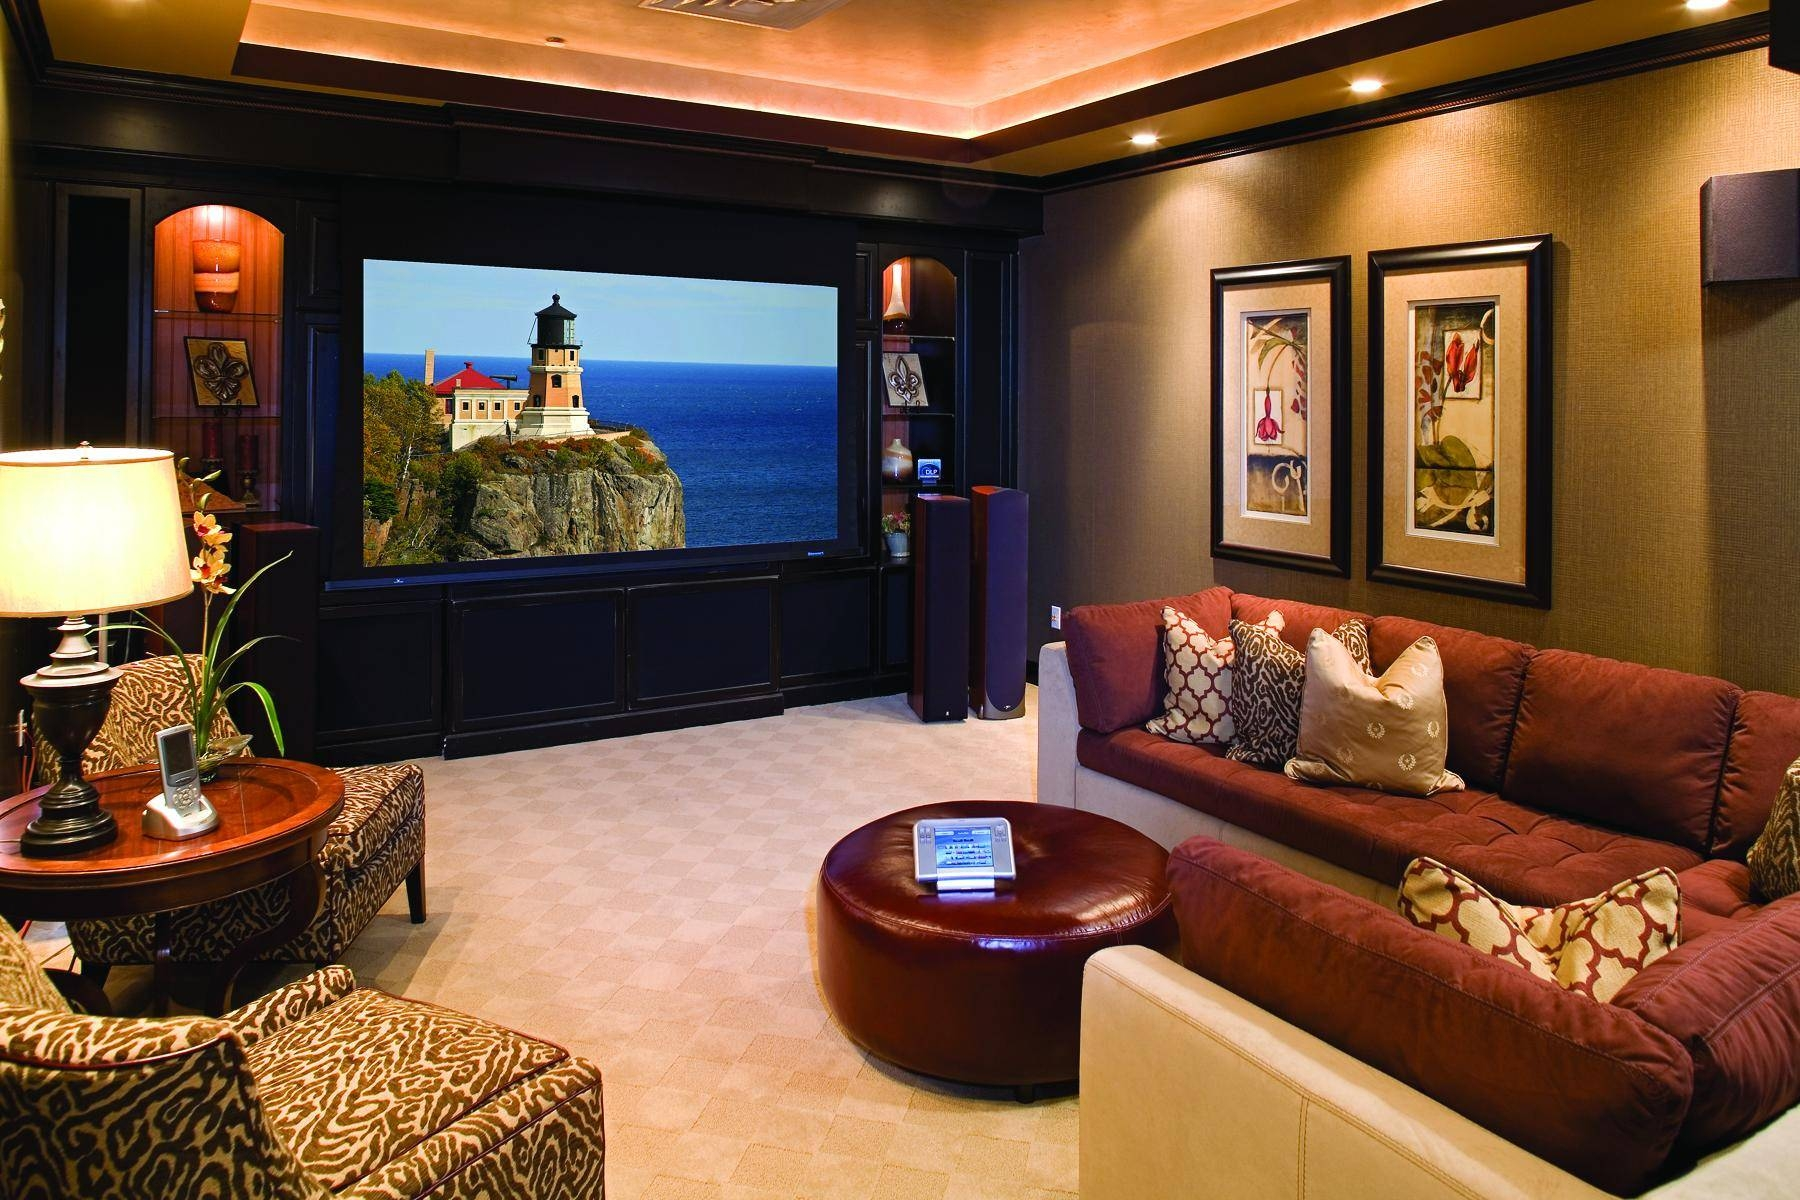 Movie Poster Wall Art Glass Coffee Table Basement Home Theater Intended For Most Popular Home Theater Wall Art (View 17 of 30)